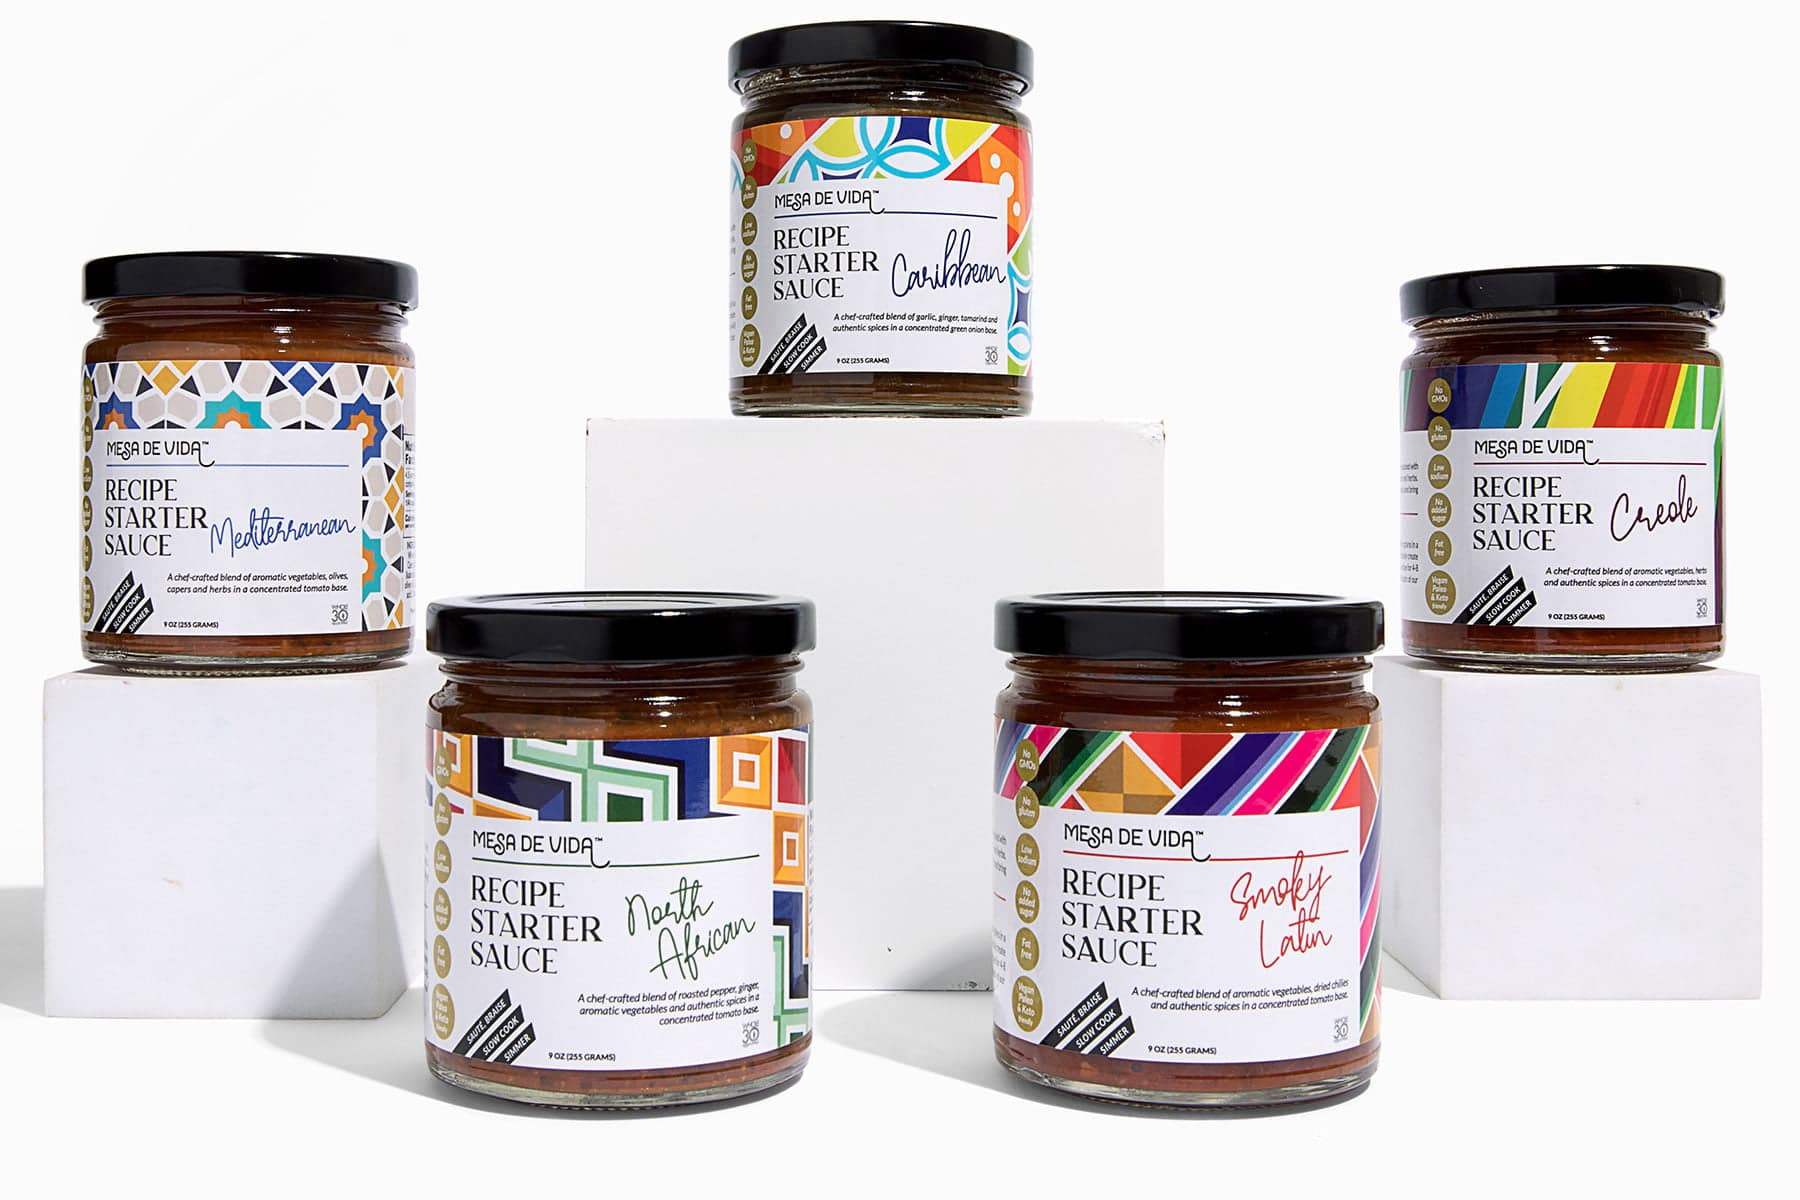 Mesa de Vida Recipe Starter Sauces global flavor collection lined up on a white background